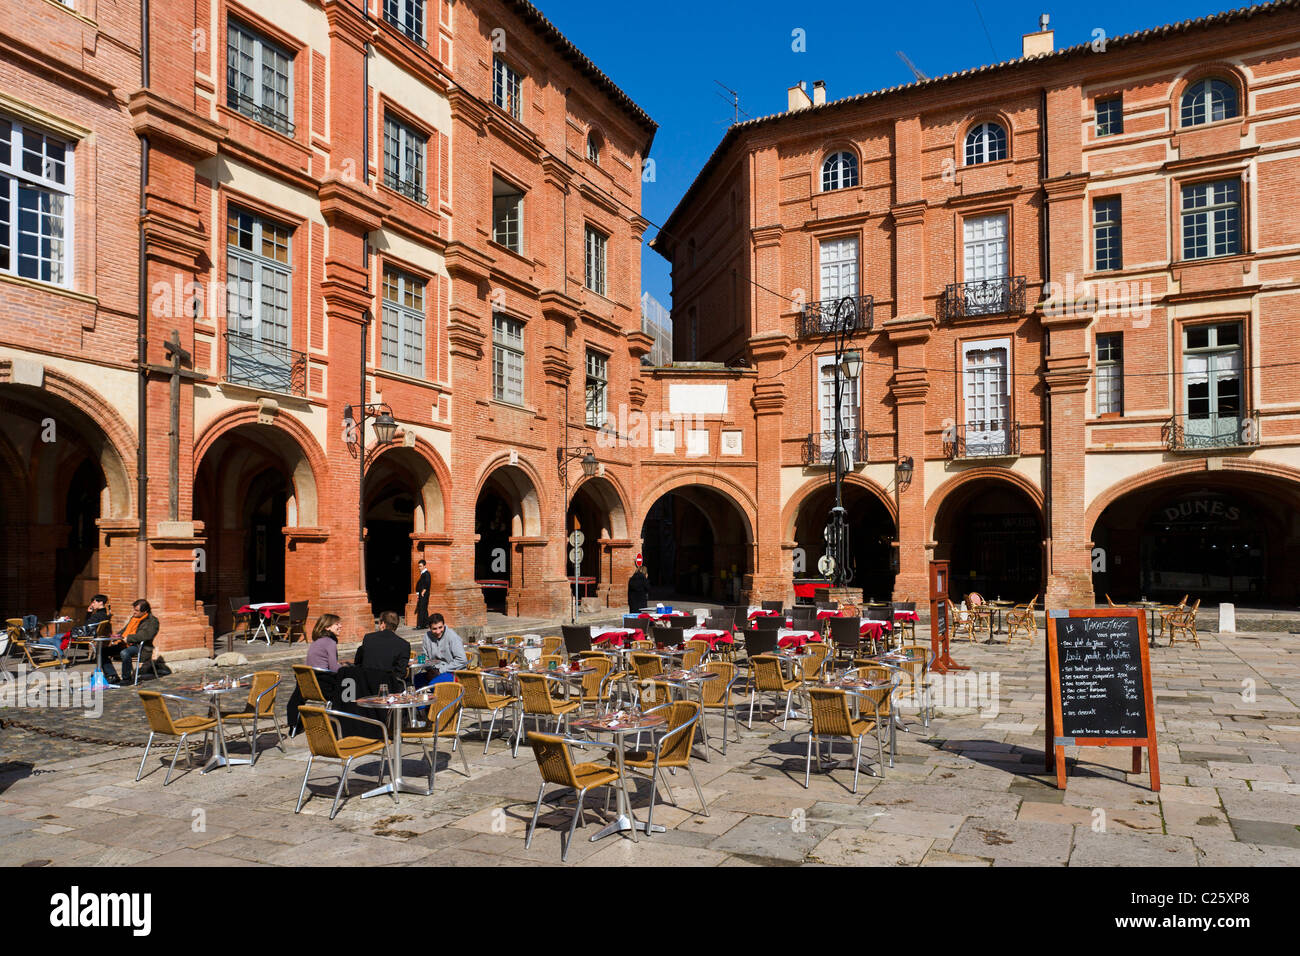 Pavement cafe in the Place Nationale, Montauban, The Lot, France - Stock Image